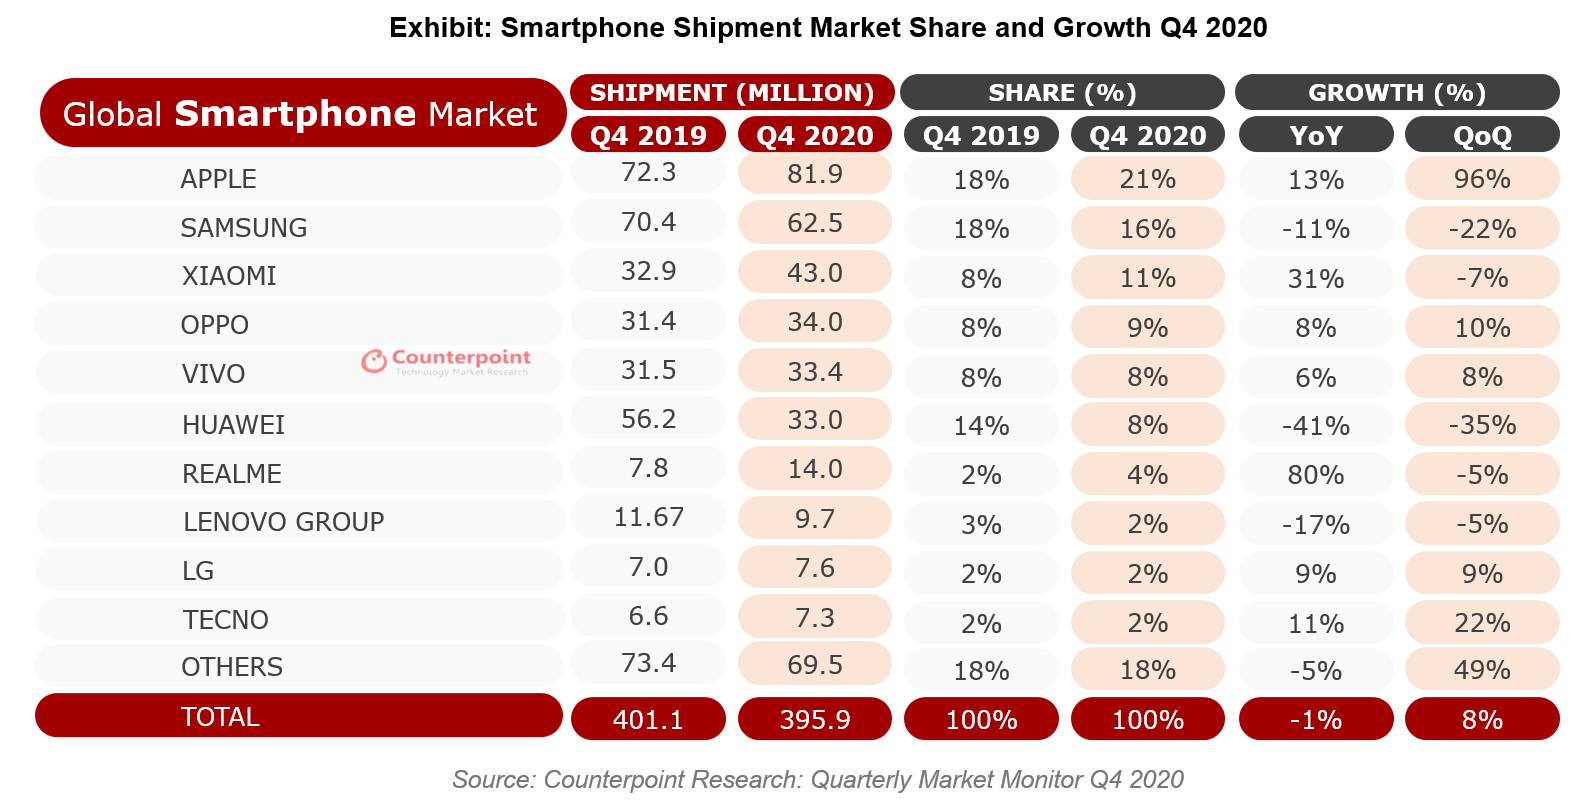 Counterpoint Research: Global Smartphone Shipment Market Share Q4 2020